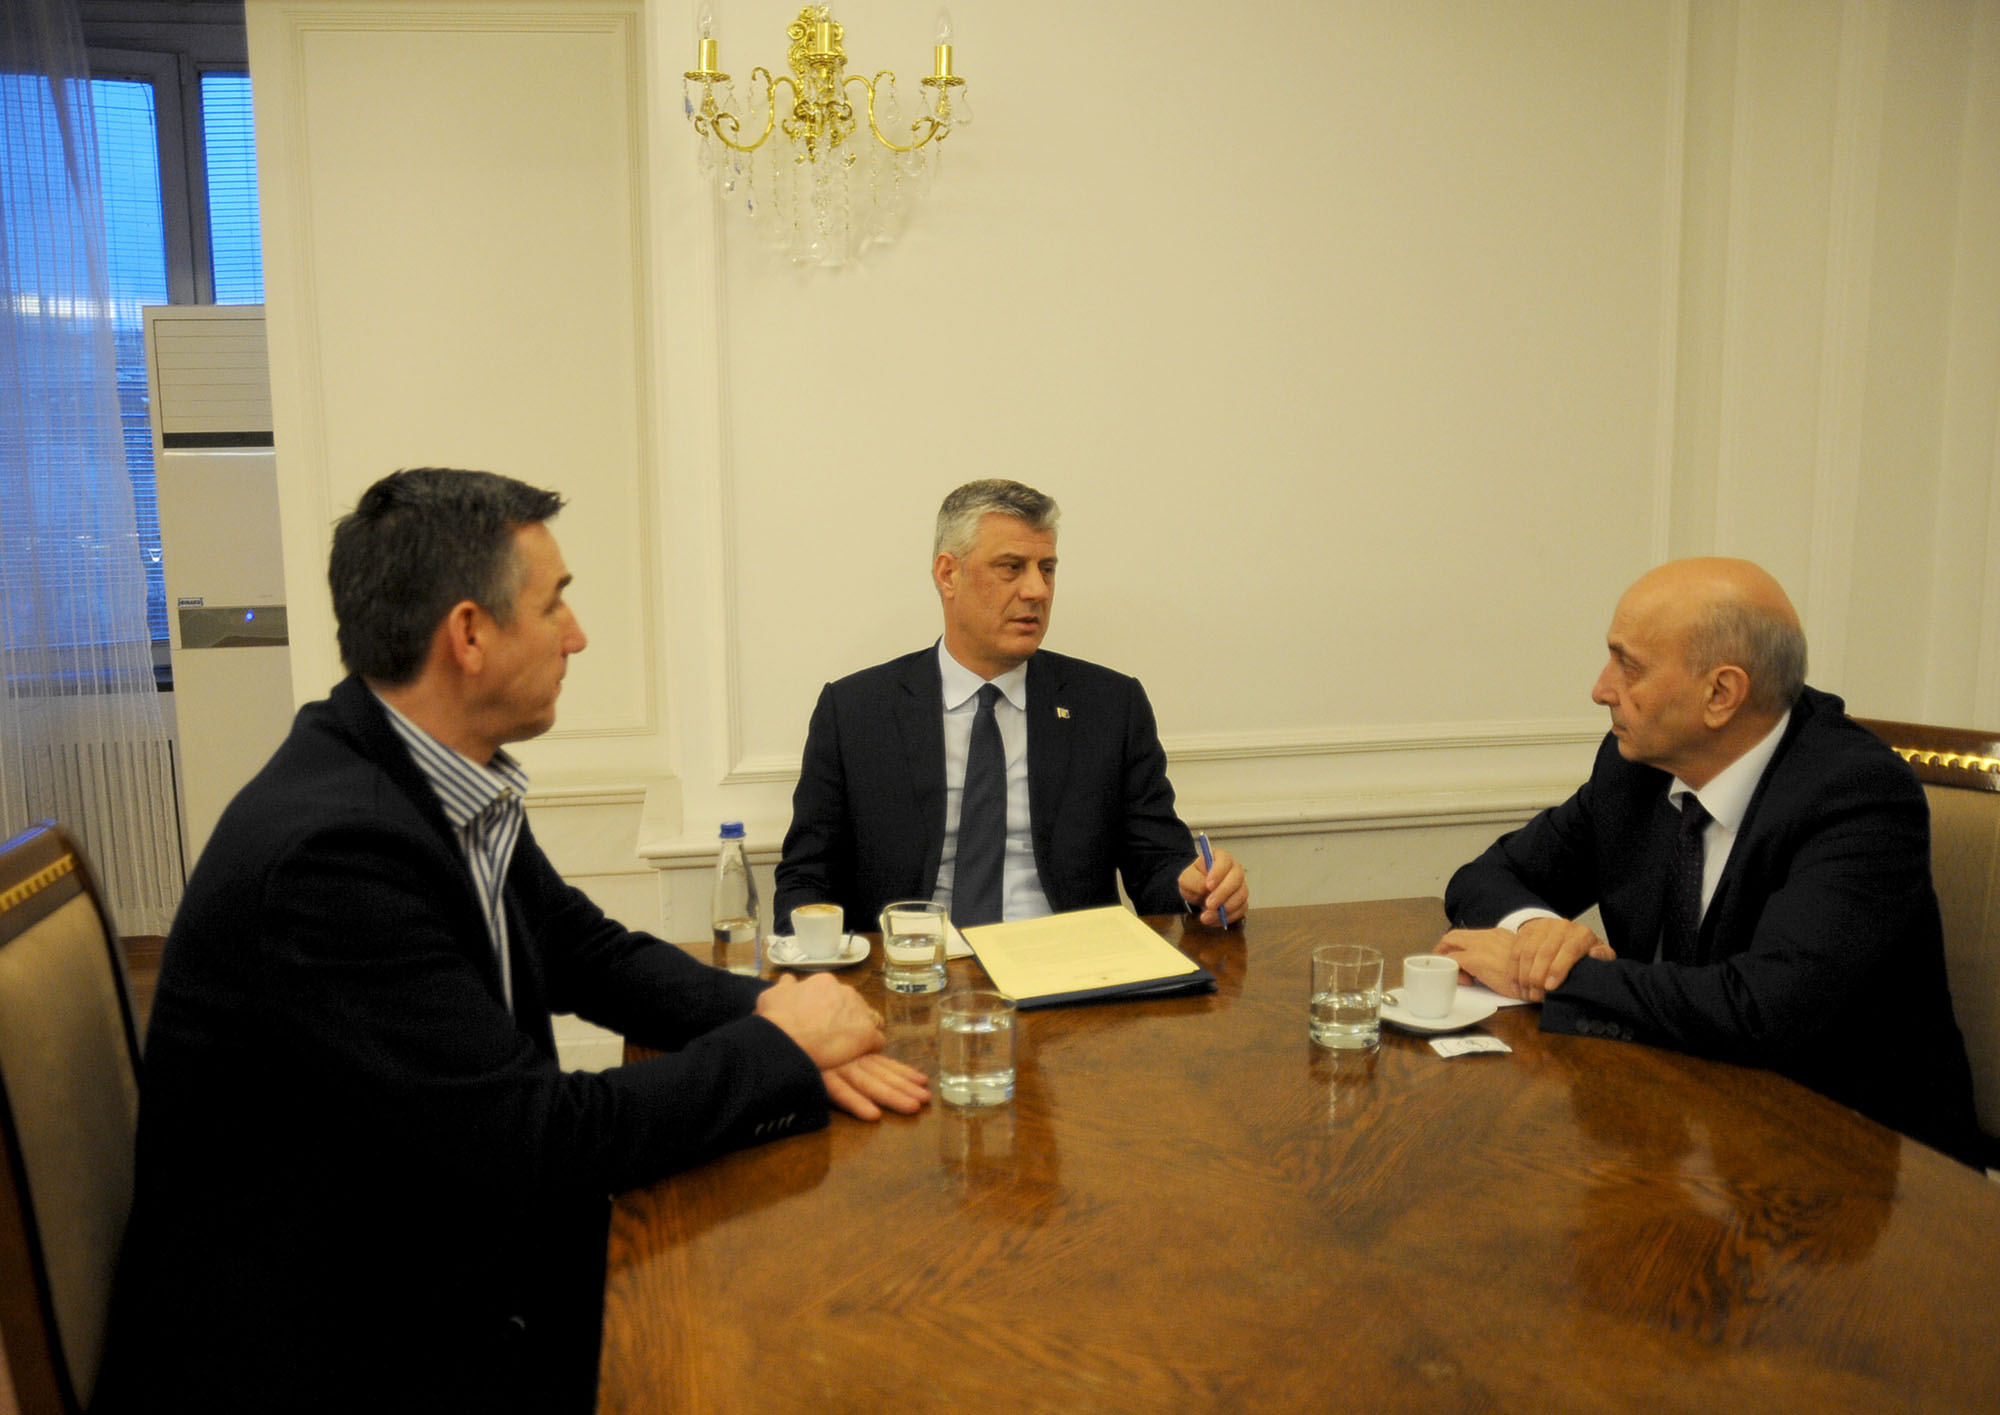 President Thaçi met with the President of the Assembly, Veseli and Prime Minister Mustafa, they get coordinated on the implementation of the international obligations - News & Events - President of the